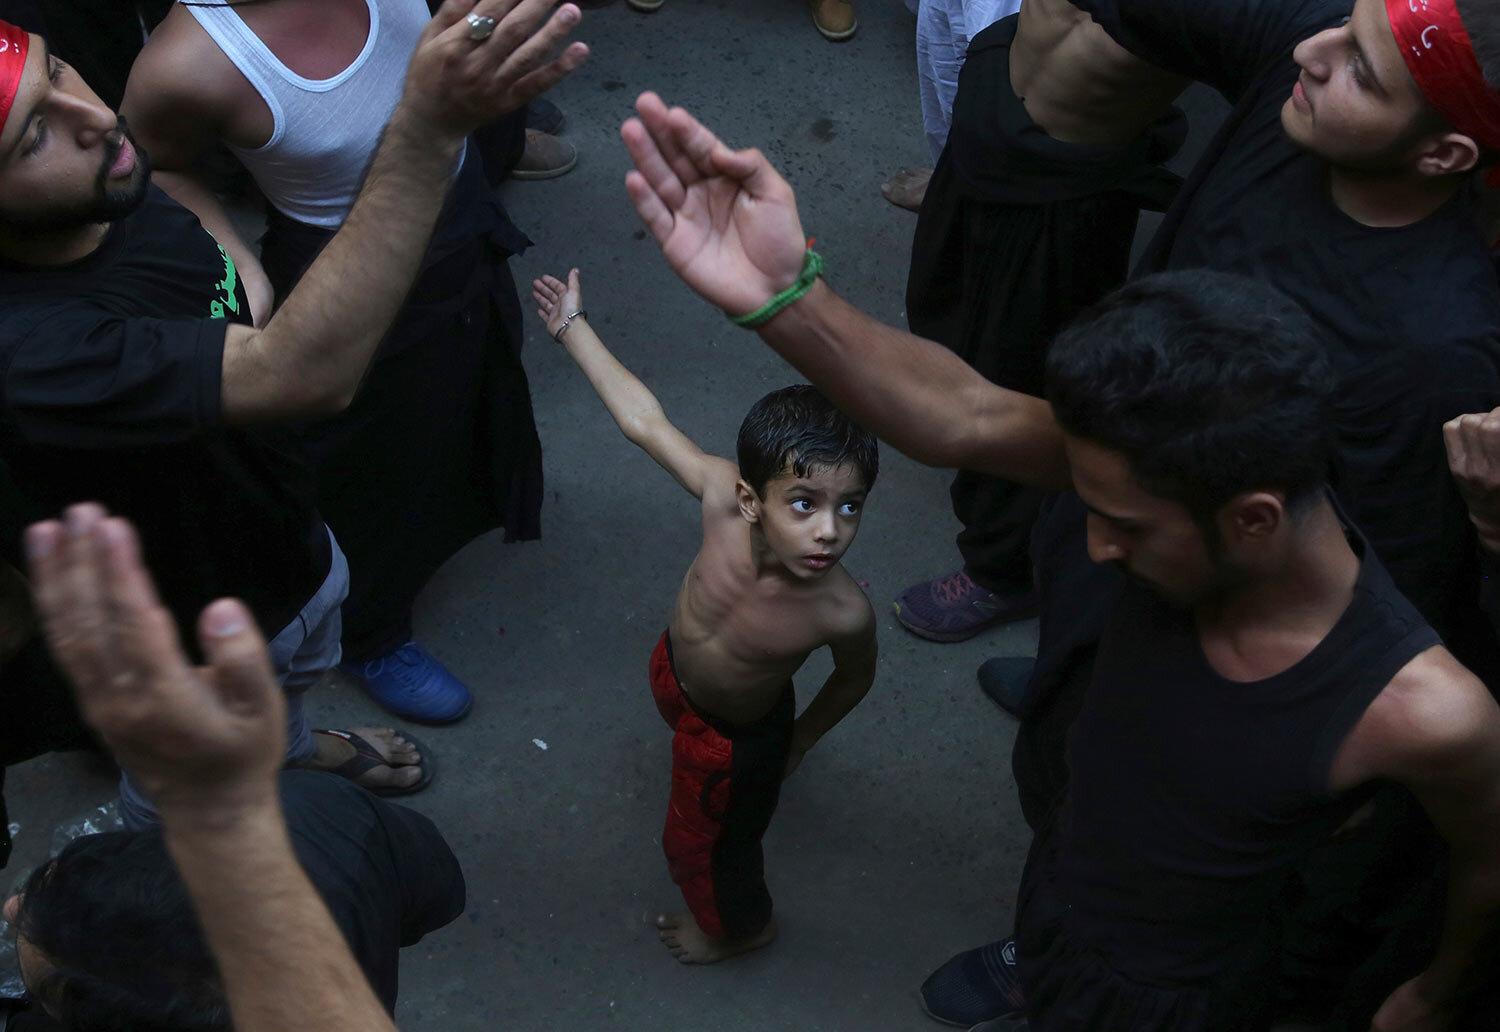 A Shiite Muslim child beats his chest next to his father during a procession to mark the end of the 40-day mourning period following the anniversary of the 7th century death of Imam Hussein, the Prophet Muhammad's grandson and one of Shiite Islam's most beloved saints, in Lahore, Pakistan, Sunday, Oct. 20, 2019. (AP Photo/K.M. Chaudary)